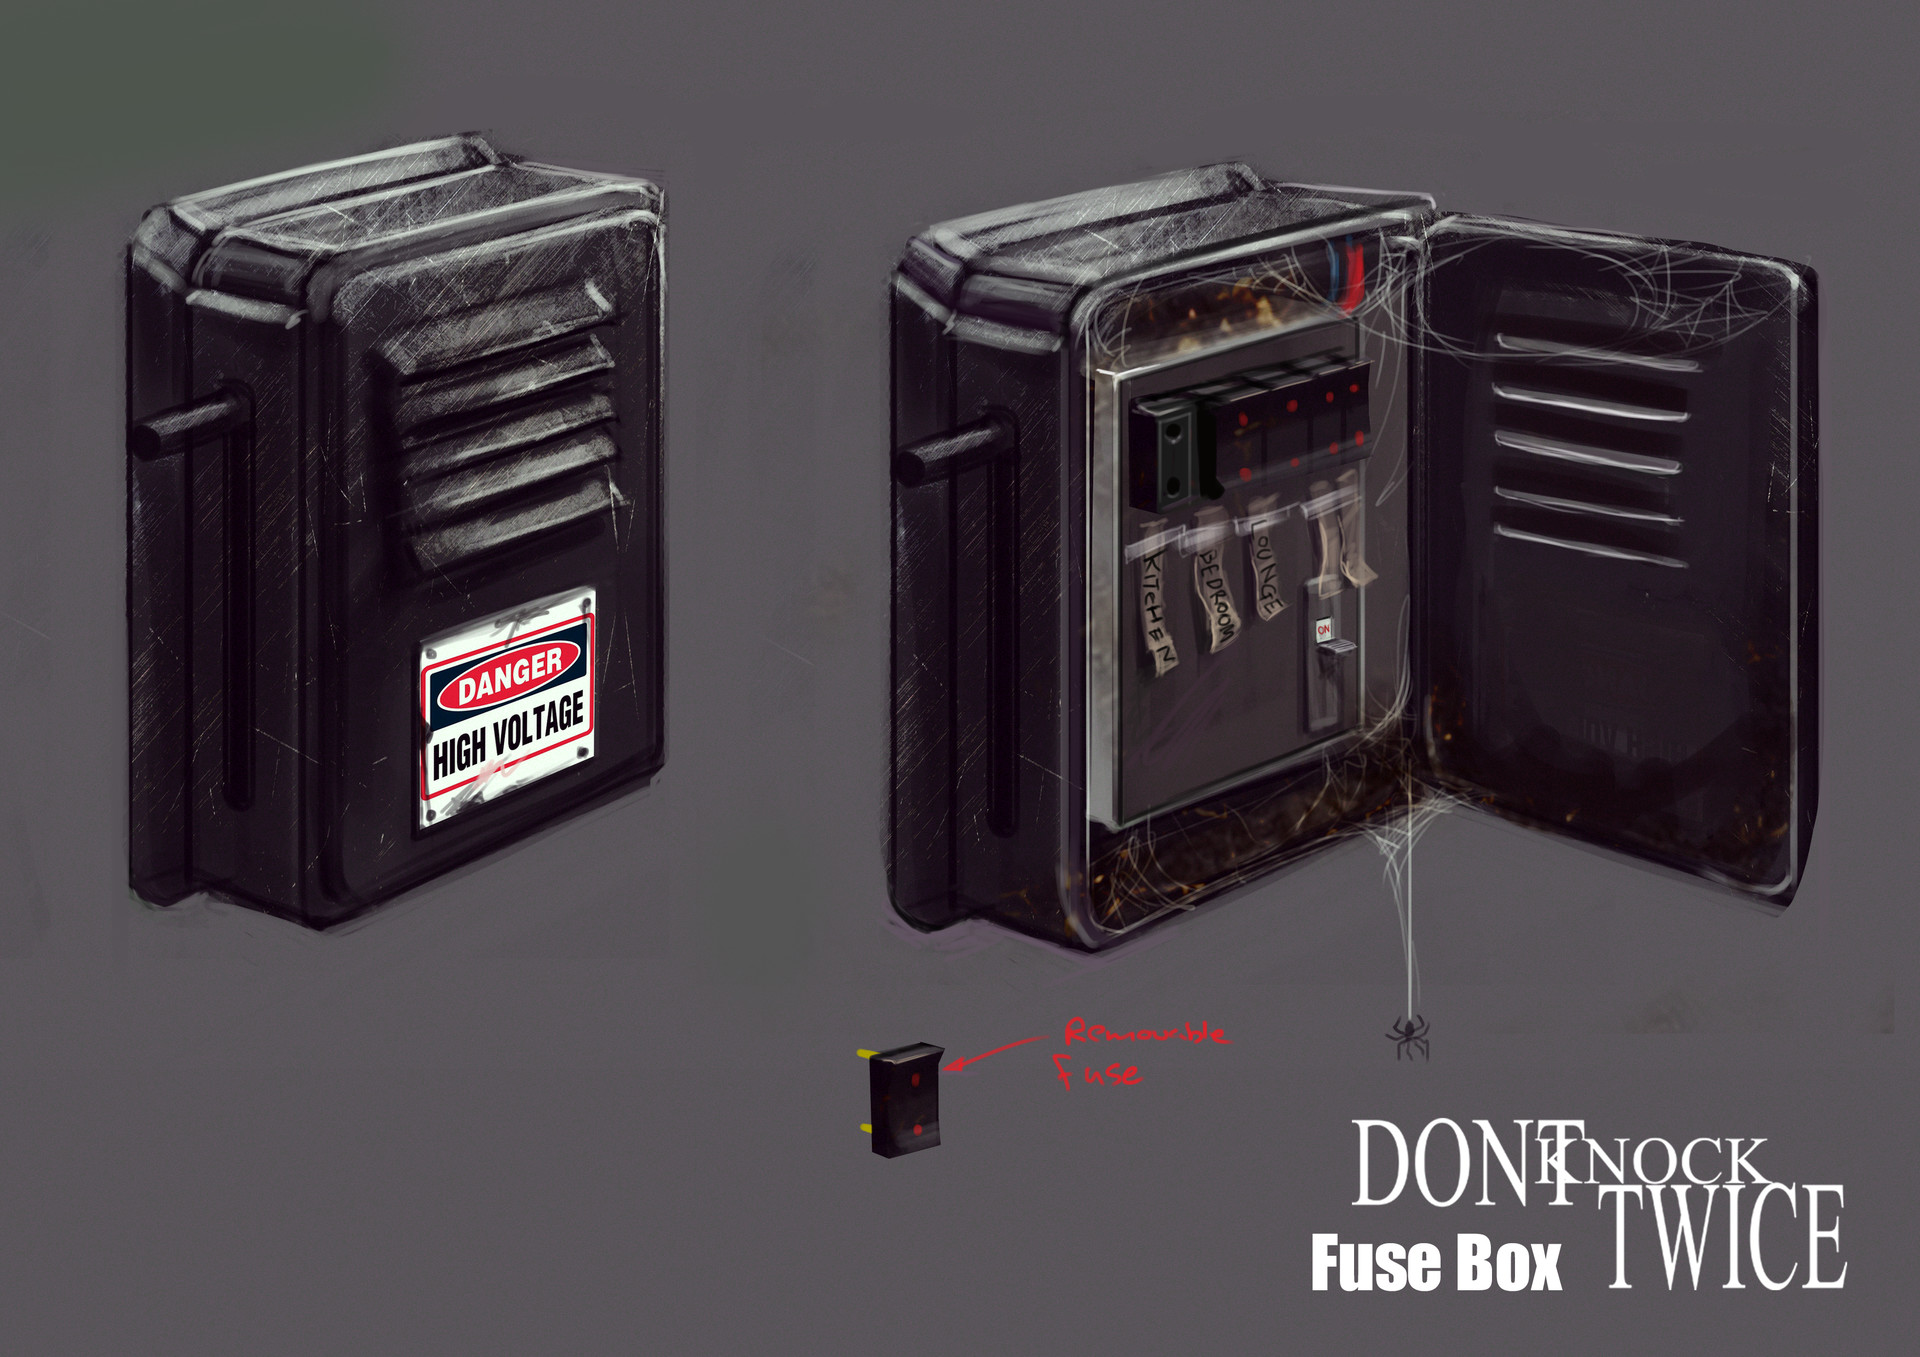 fuse box that the player would interact with  [ 1920 x 1357 Pixel ]